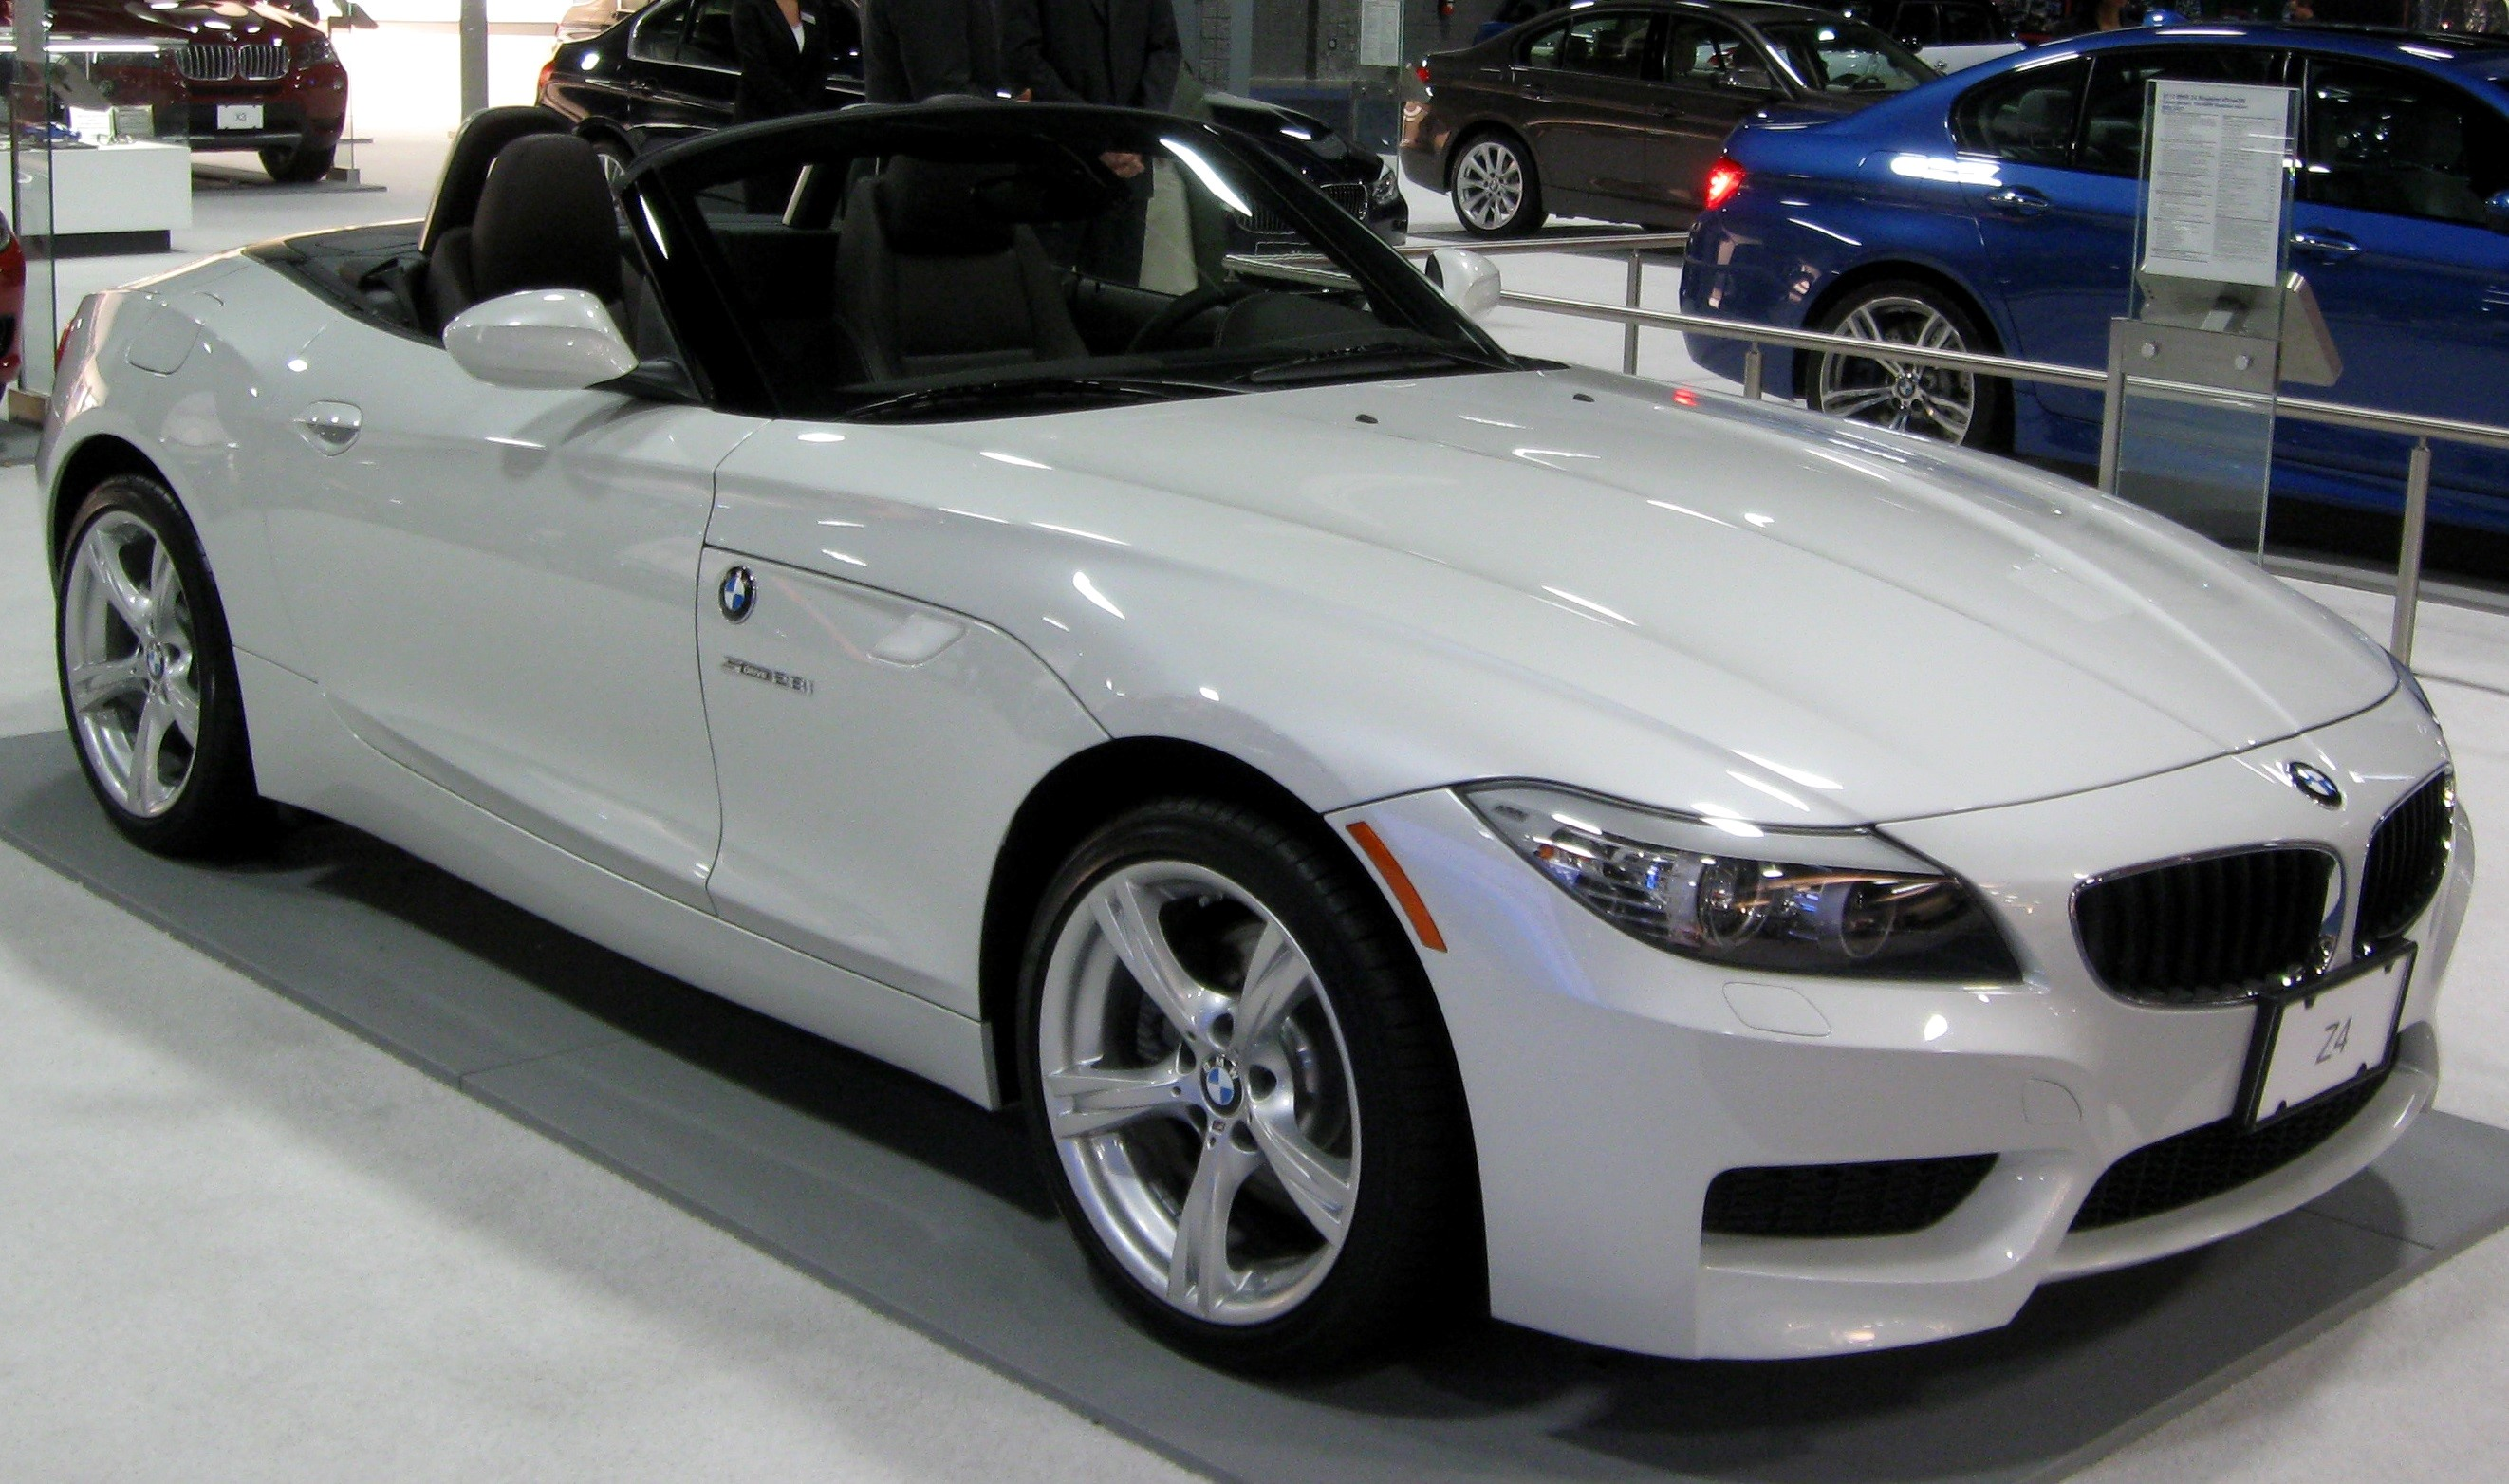 Beautiful White Bmw Z4 Car Wallpapers Download Bmw Car Pics Download 2644x1564 Wallpaper Teahub Io